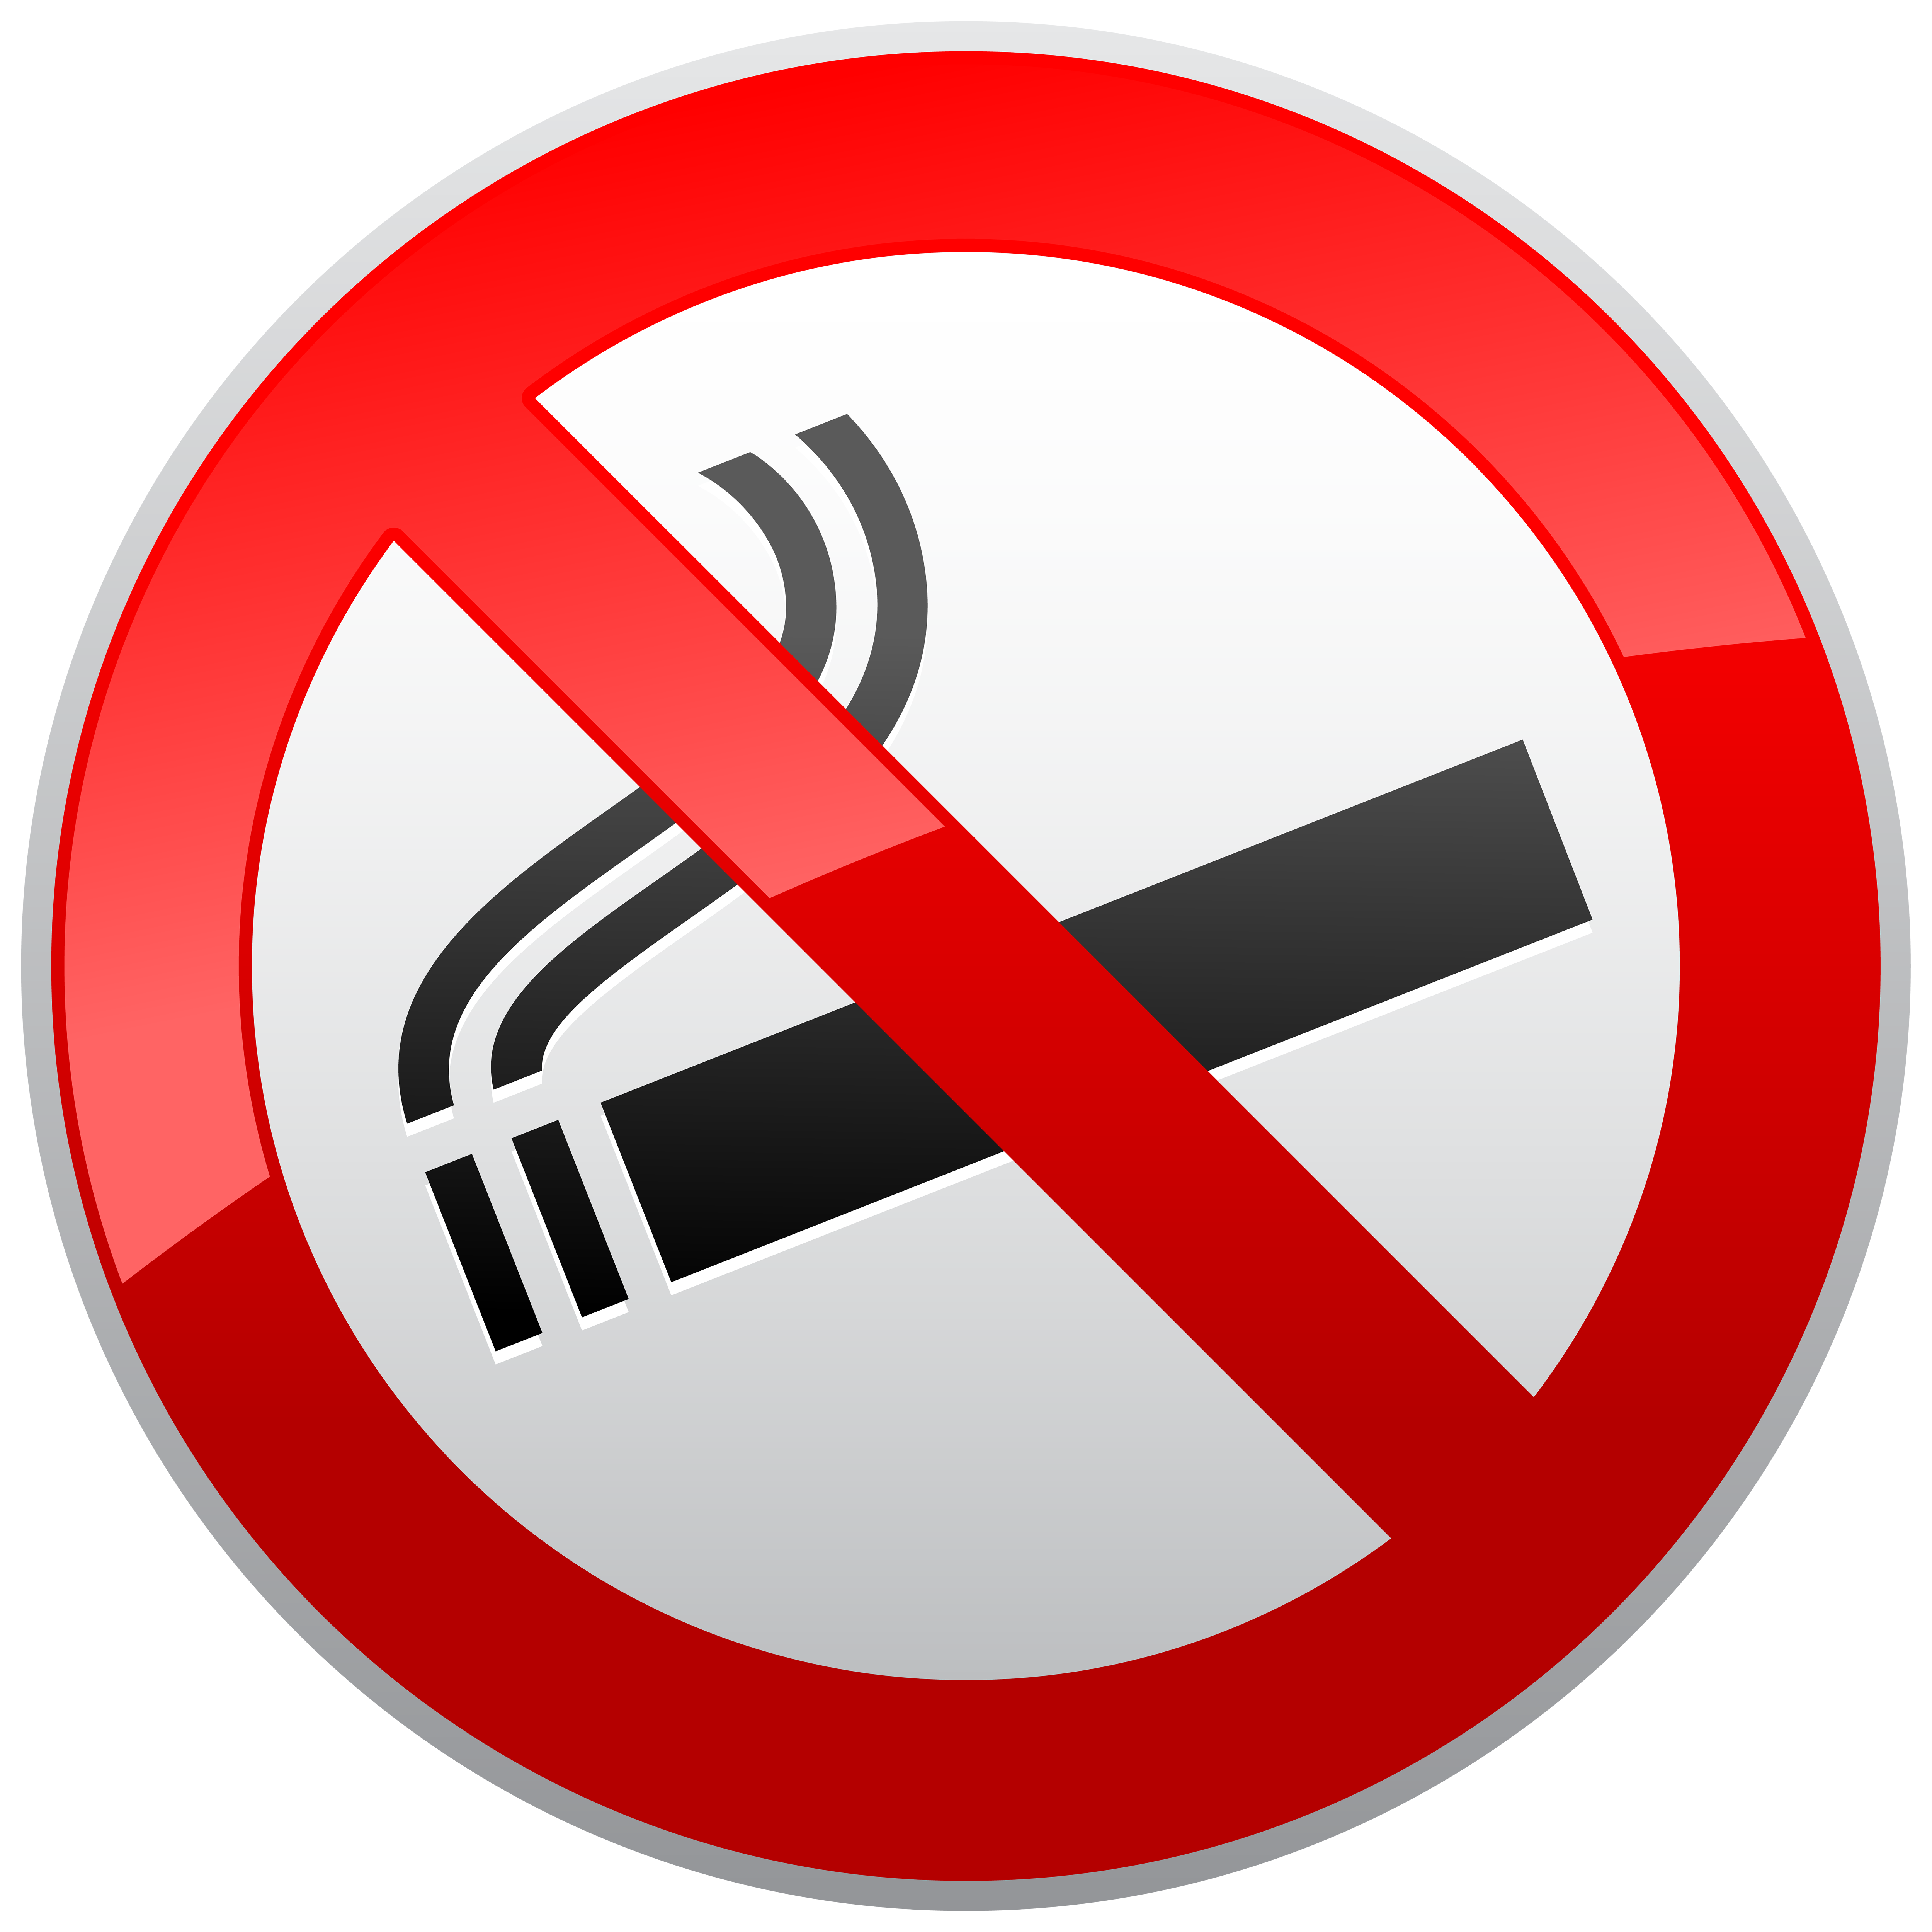 Hearts clipart smoking. No prohibition sign png